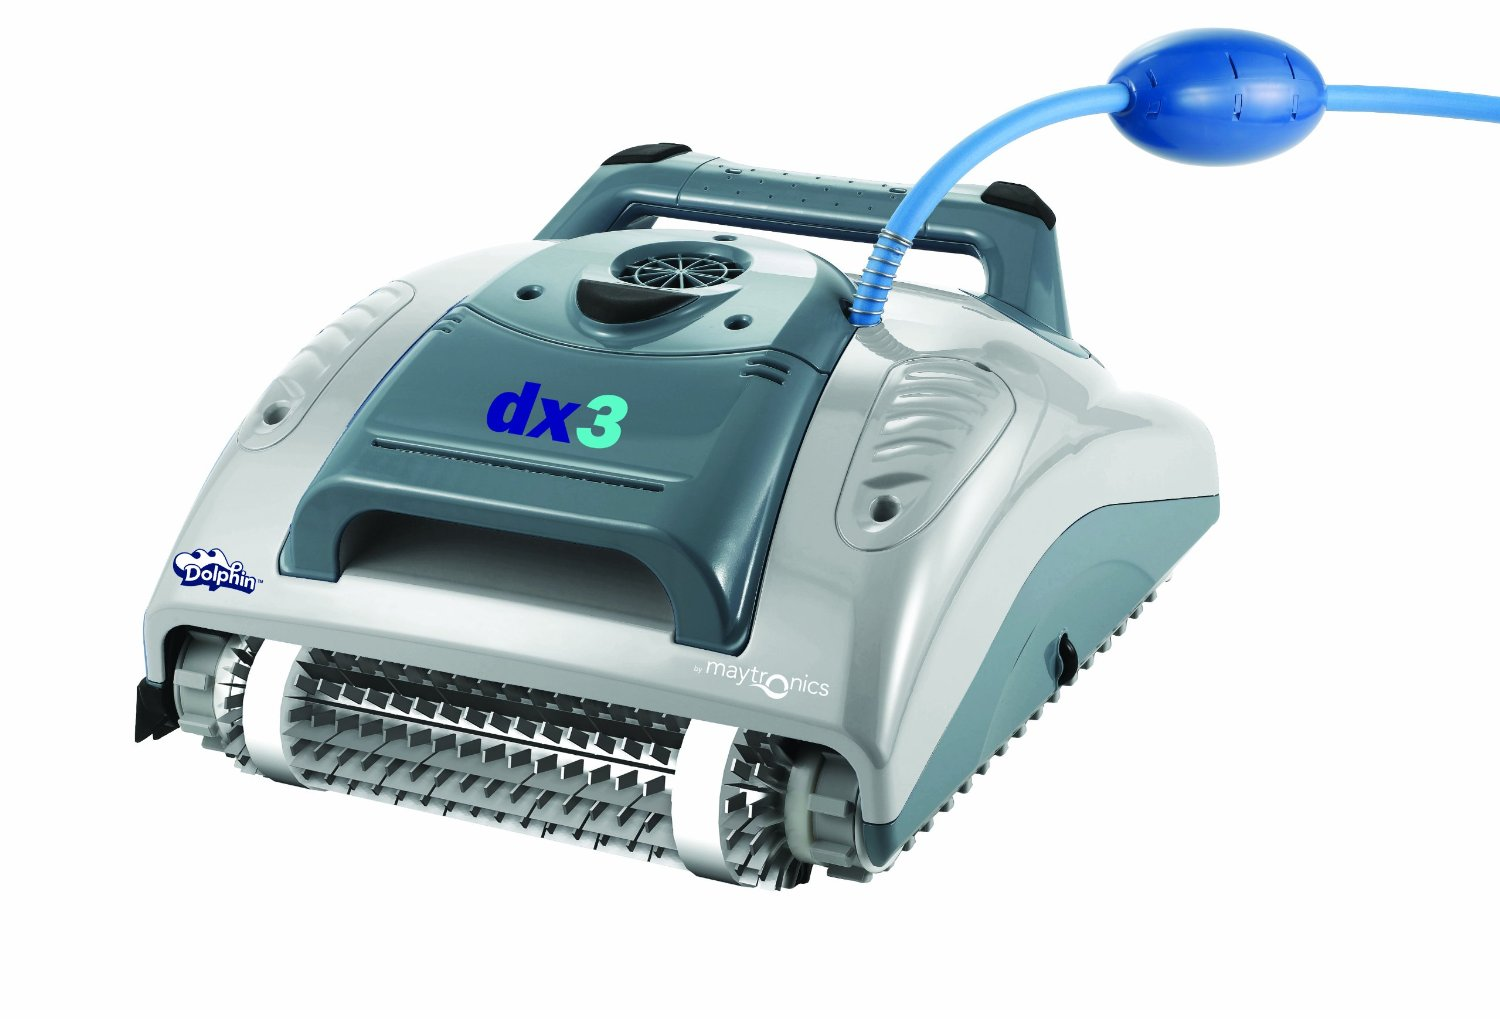 Maytronics DX3 Dolphin Robotic Pool Cleaner Review